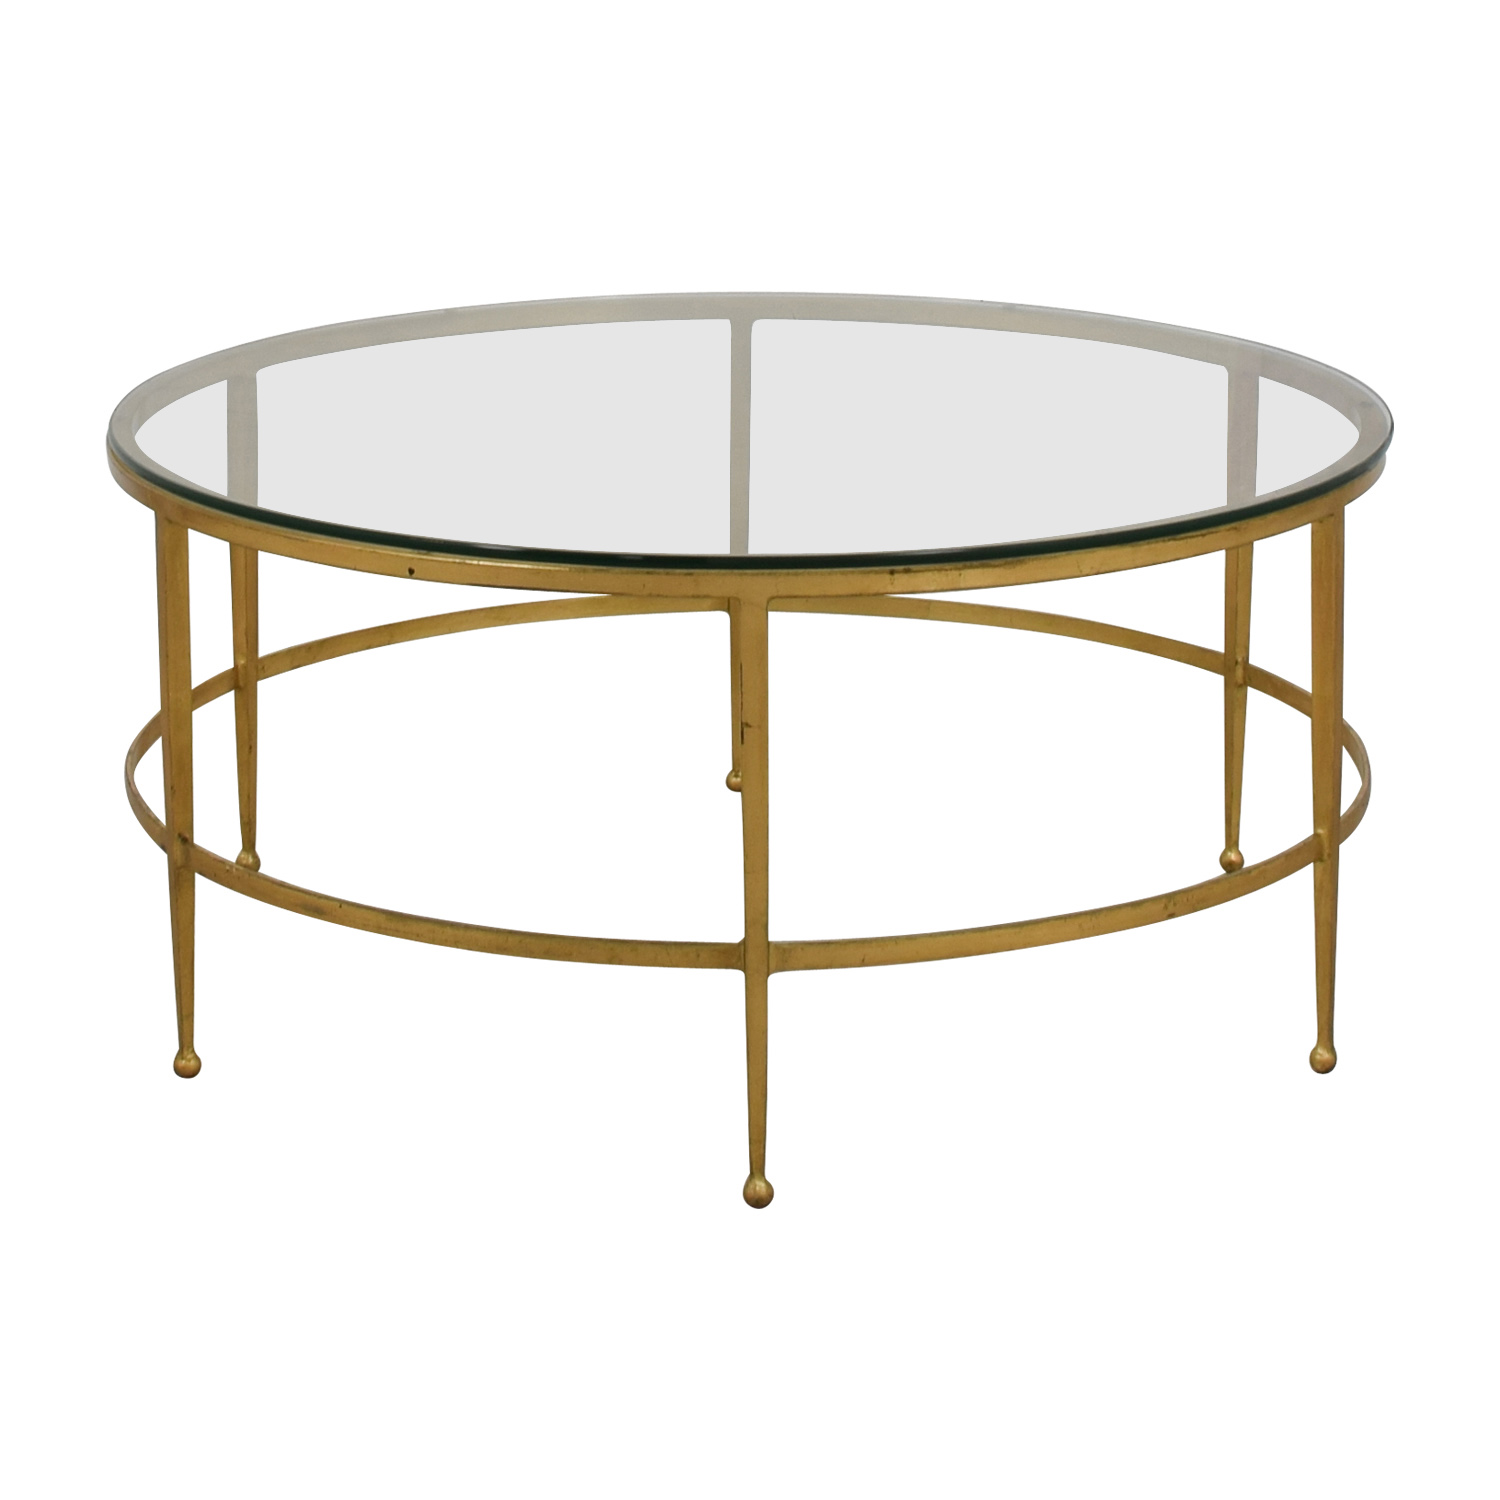 Round Gold and Glass Table sale